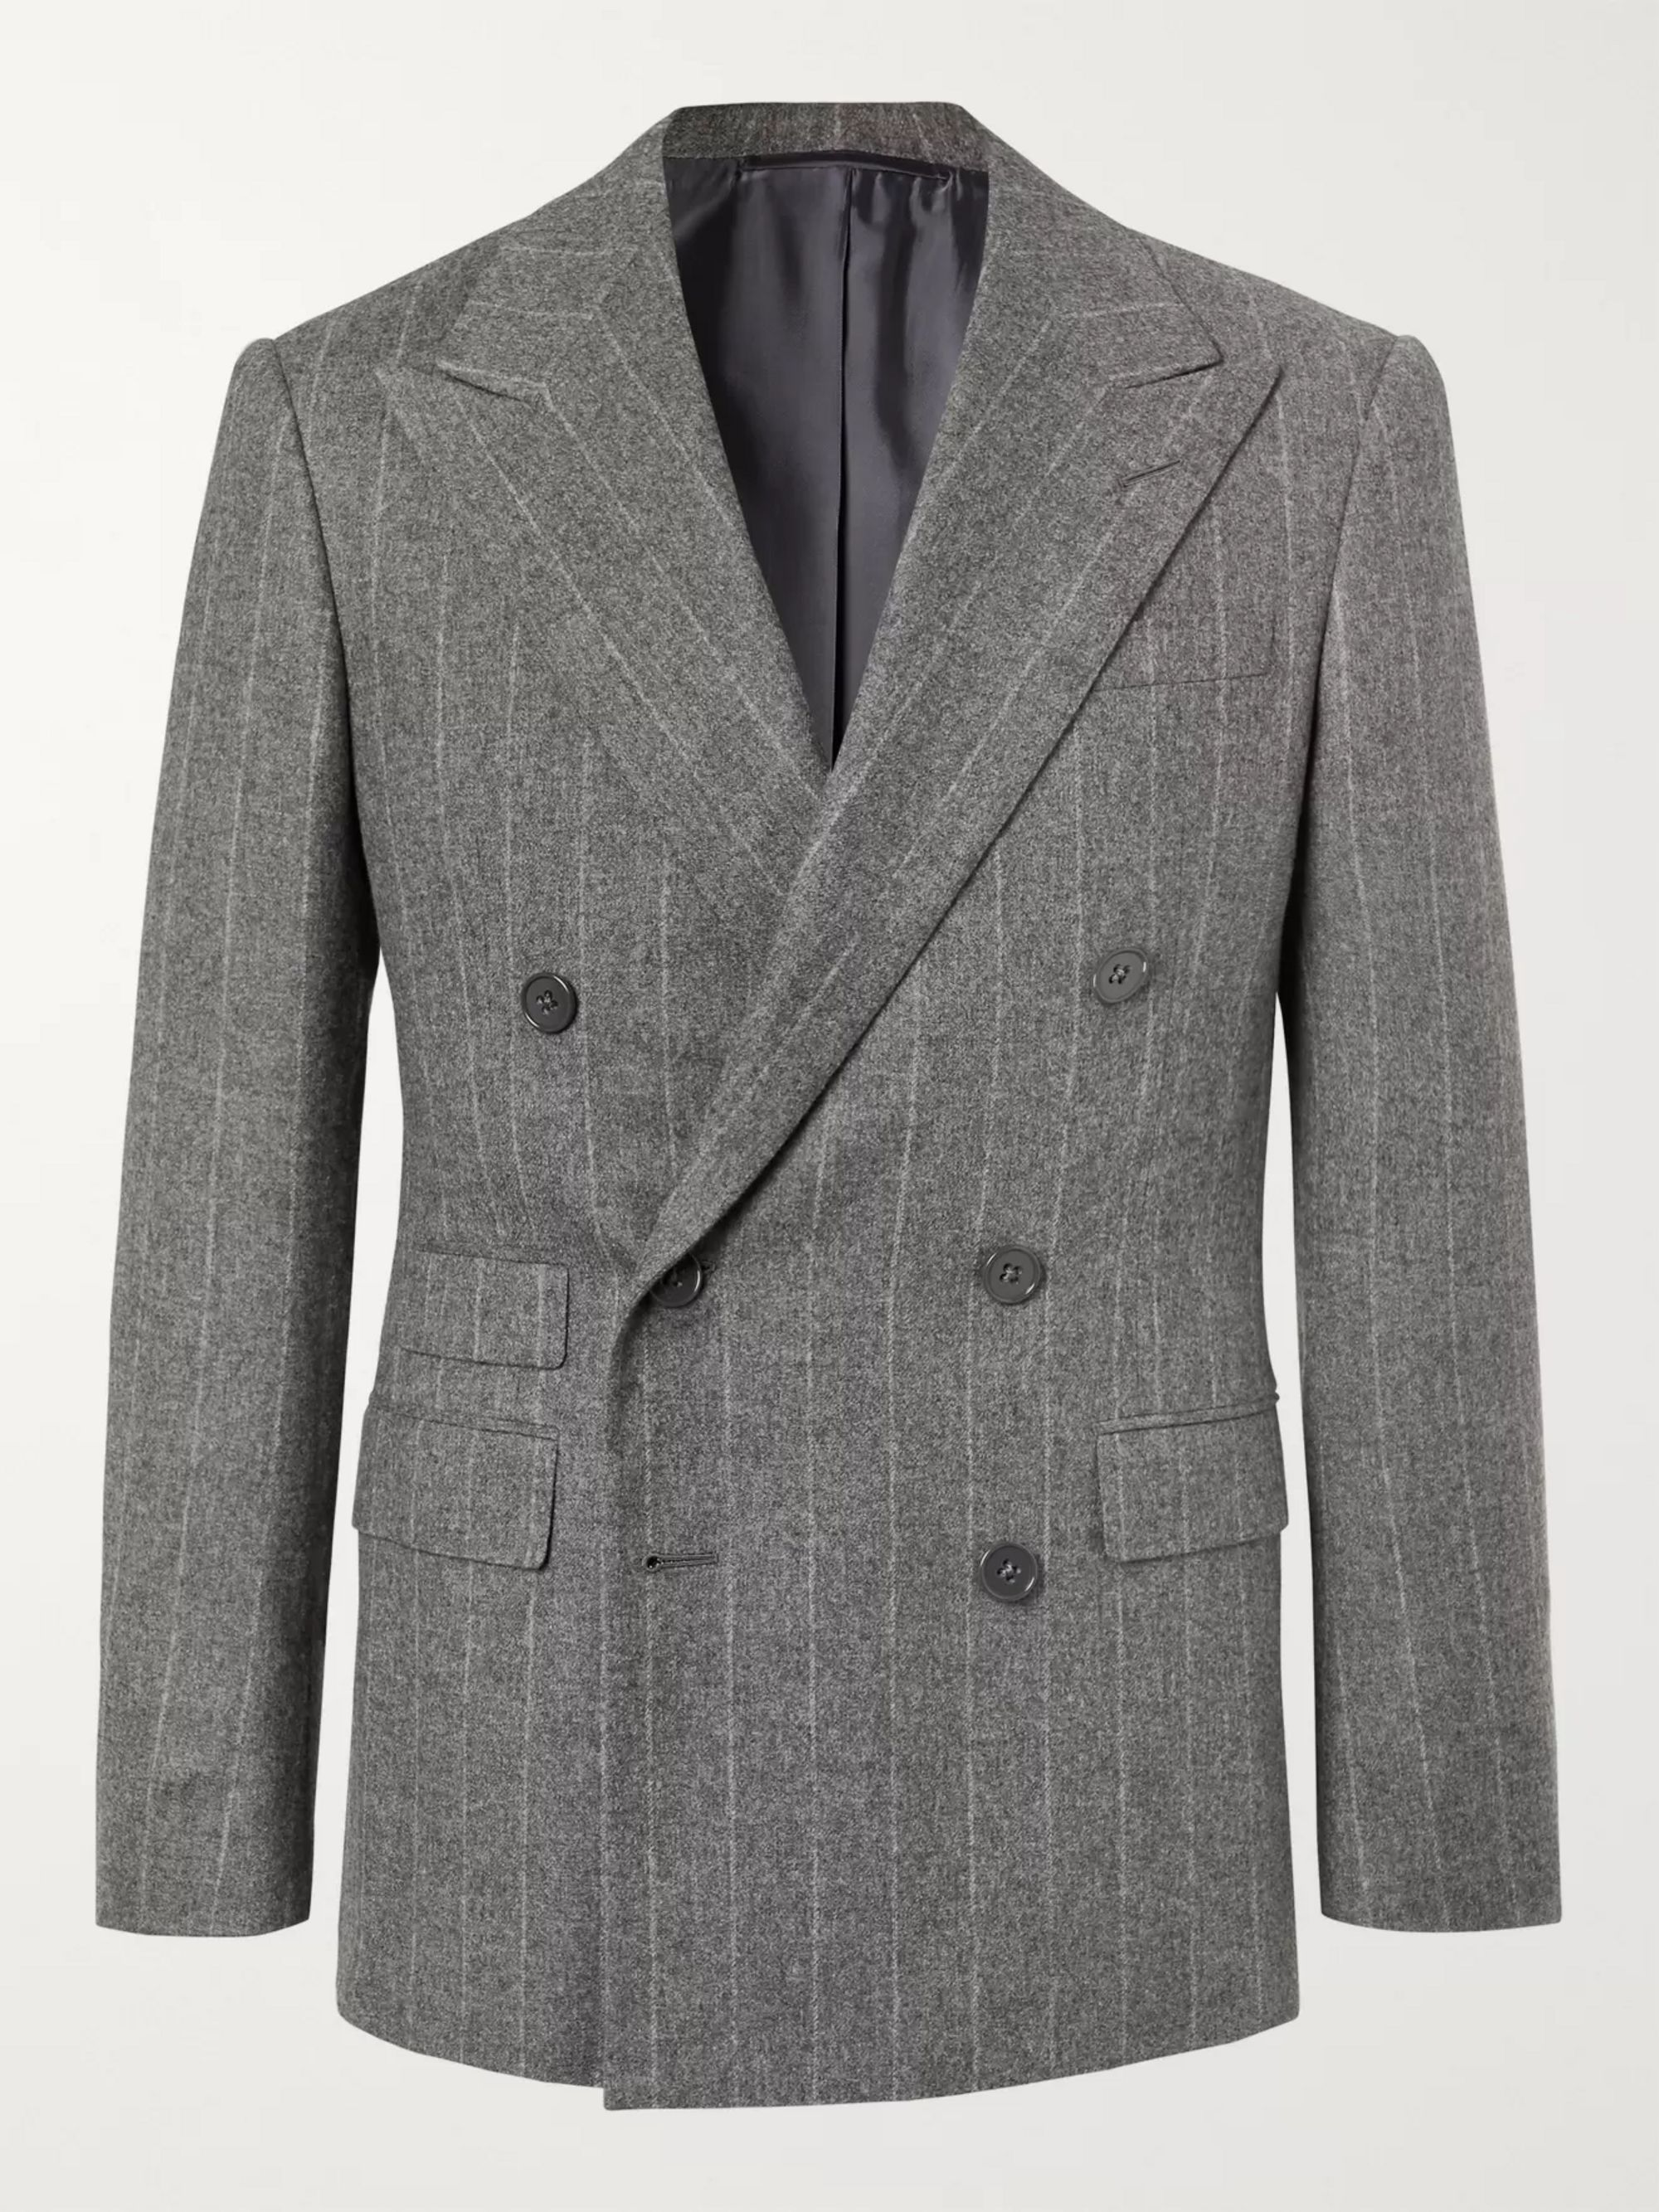 Ralph Lauren Purple Label Grey Gregory Double-Breasted Pinstriped Wool Suit Jacket